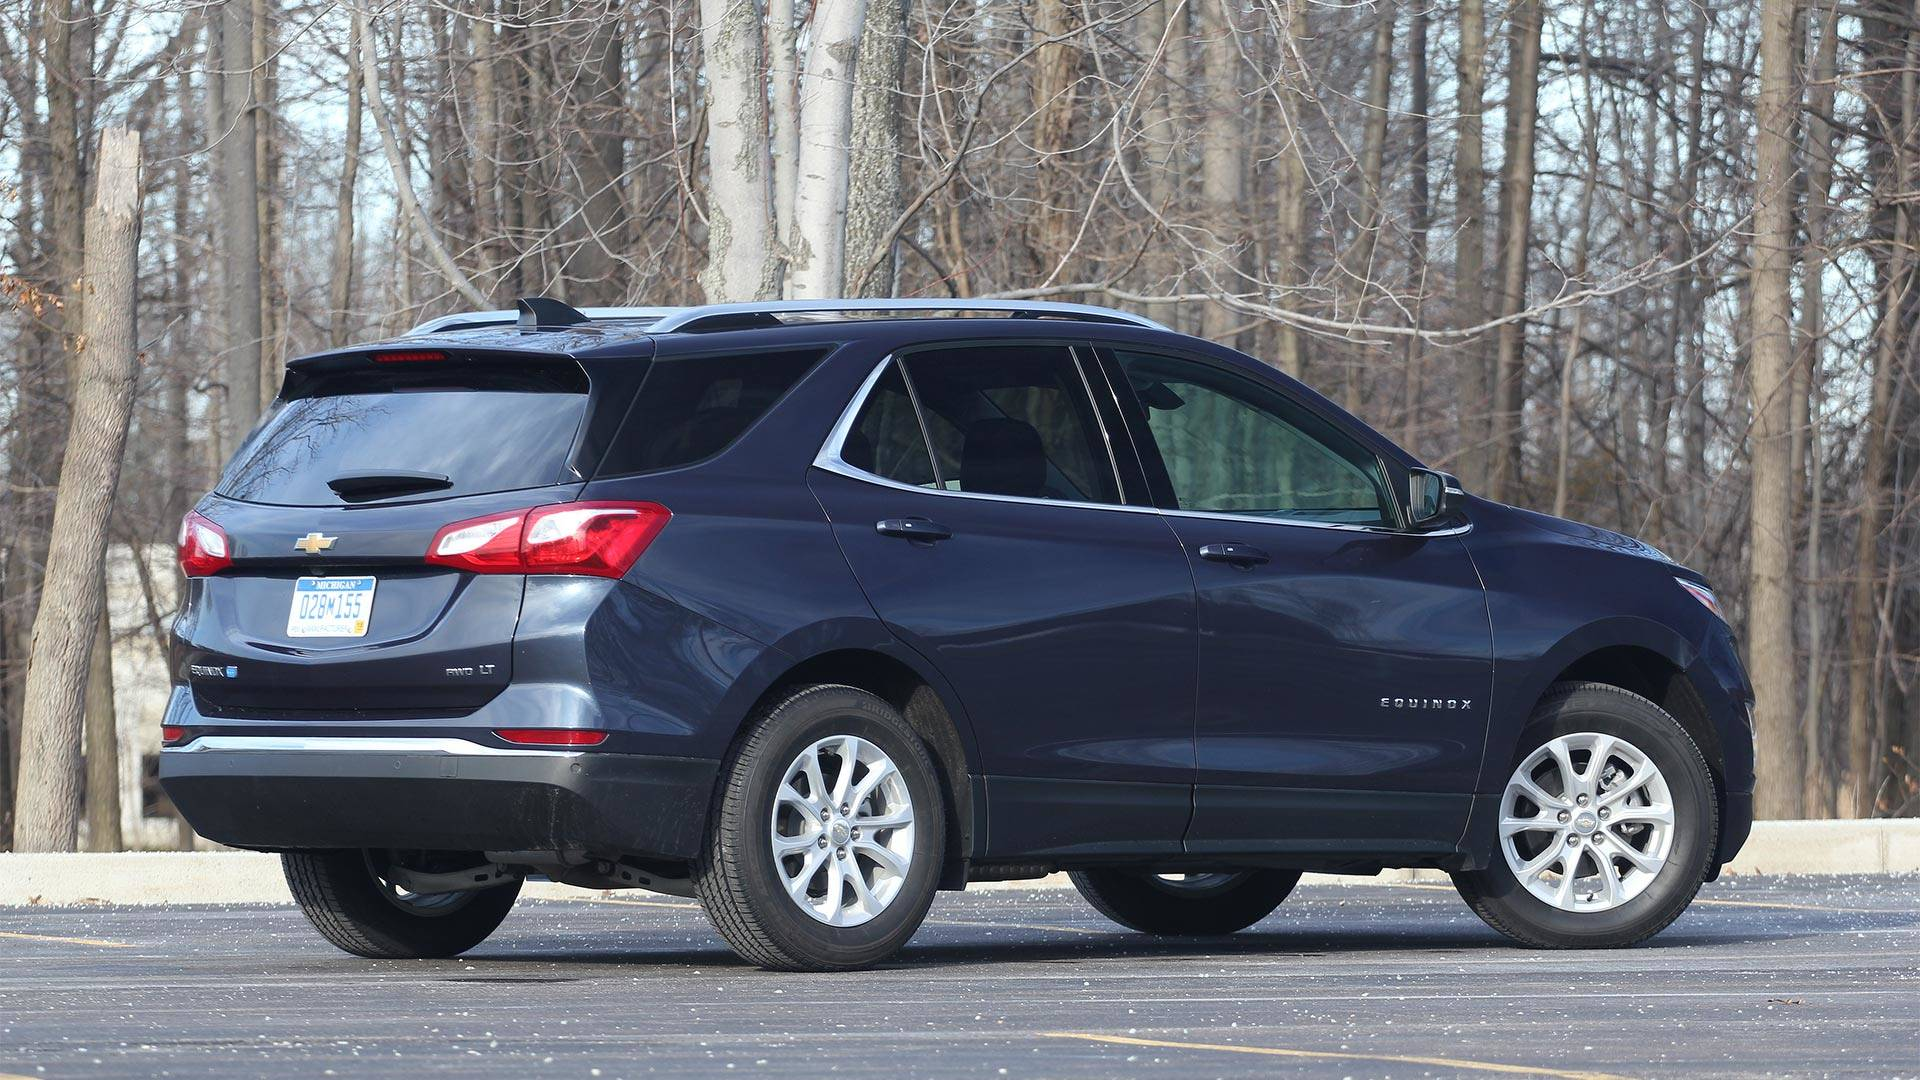 Chevy Equinox Towing Capacity >> 2018 Chevy Equinox Diesel Review Going The Distance